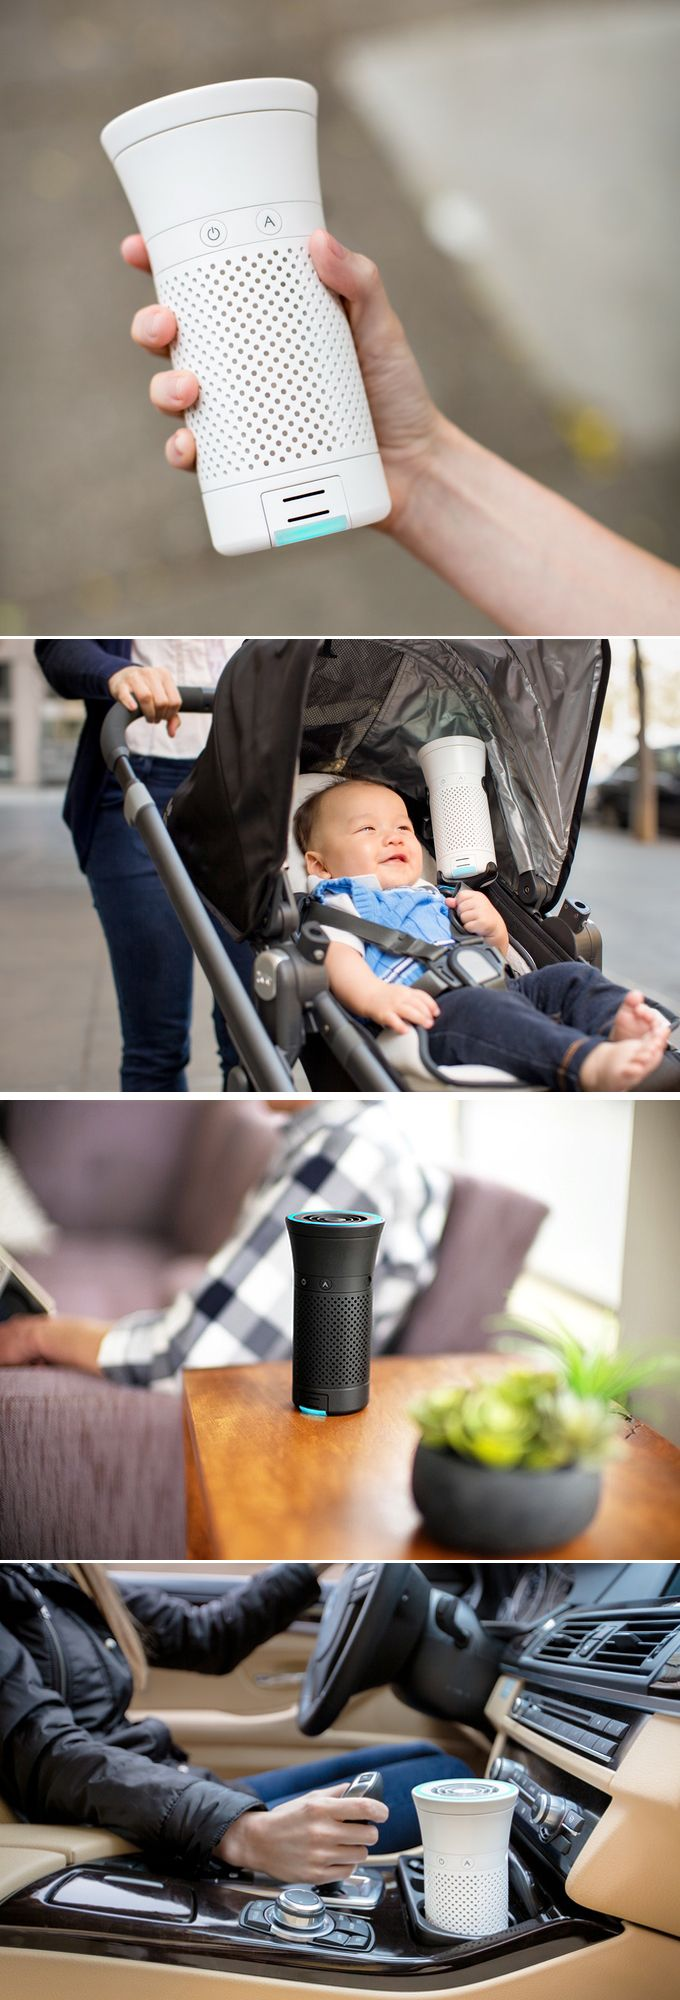 Light and portable, Wynd, makes sure the air you breathe is clean. Check it out==>   Wynd - The Smartest Air Purifier For Your Personal Space   http://gwyl.io/wynd-air-purifier/